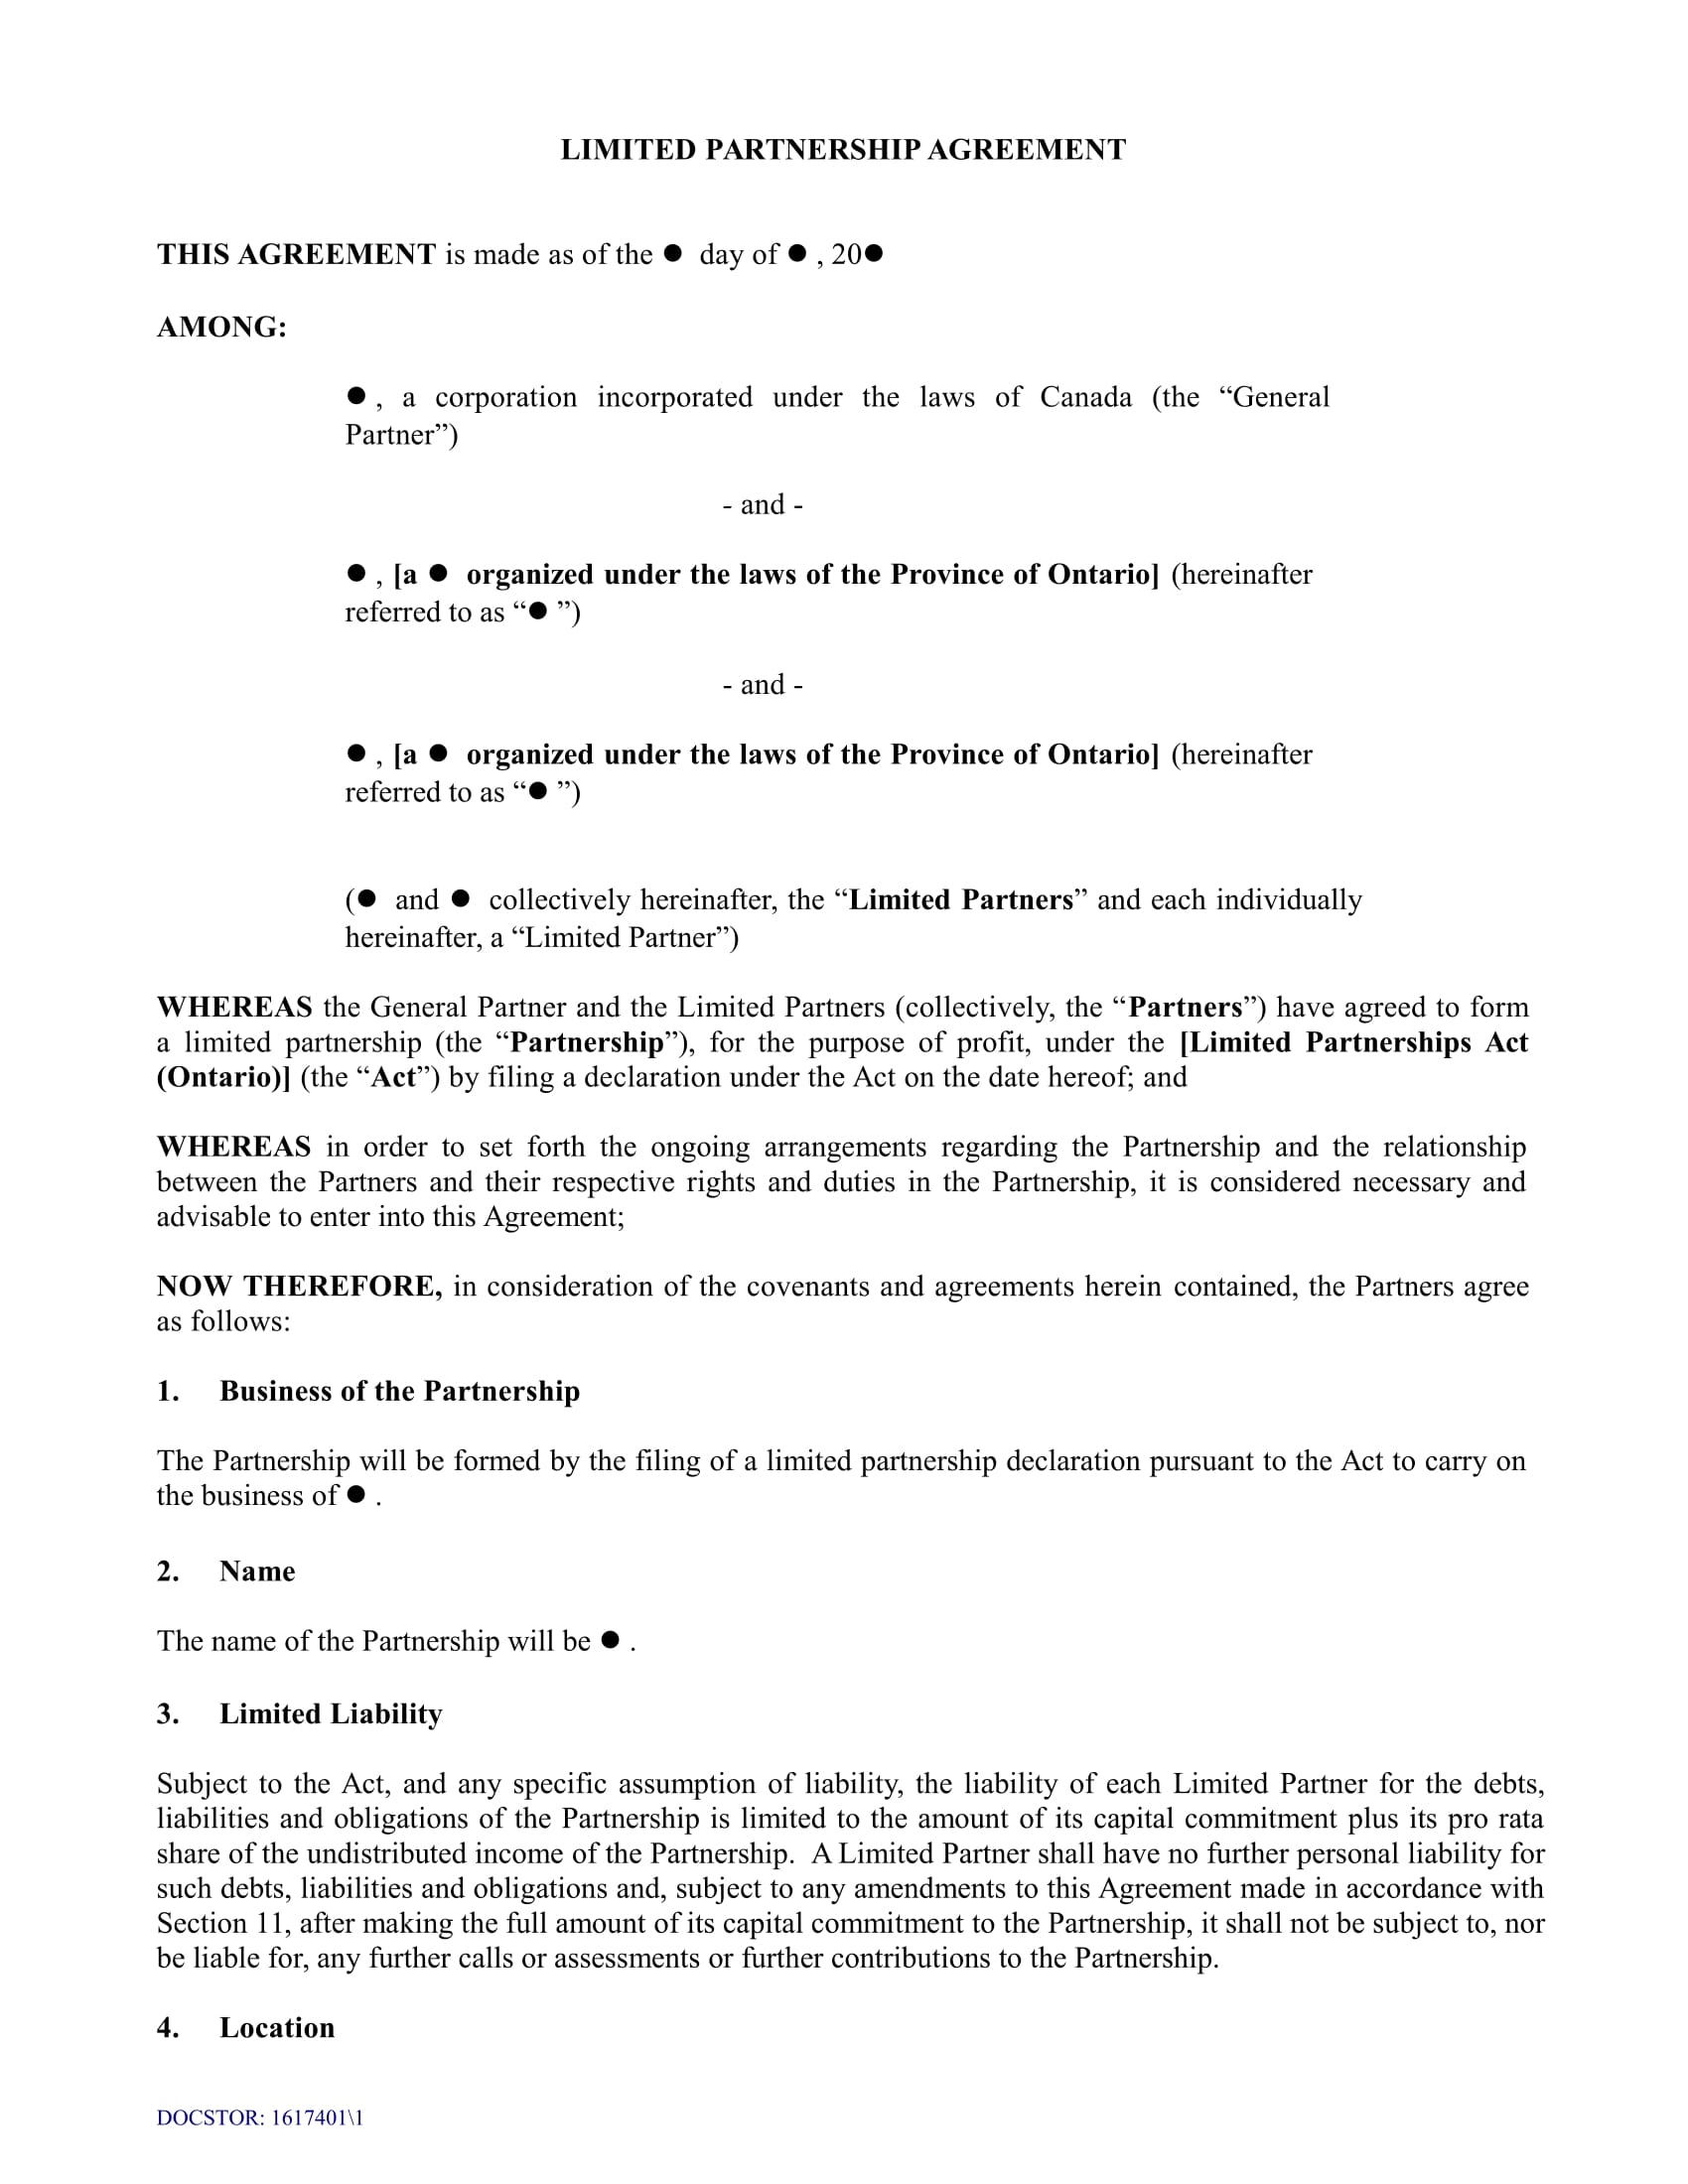 This template might be used by a small business (or professional services firm) requiring a simple llp structure. Free 4 Limited Partnership Agreement Long Forms In Pdf Ms Word